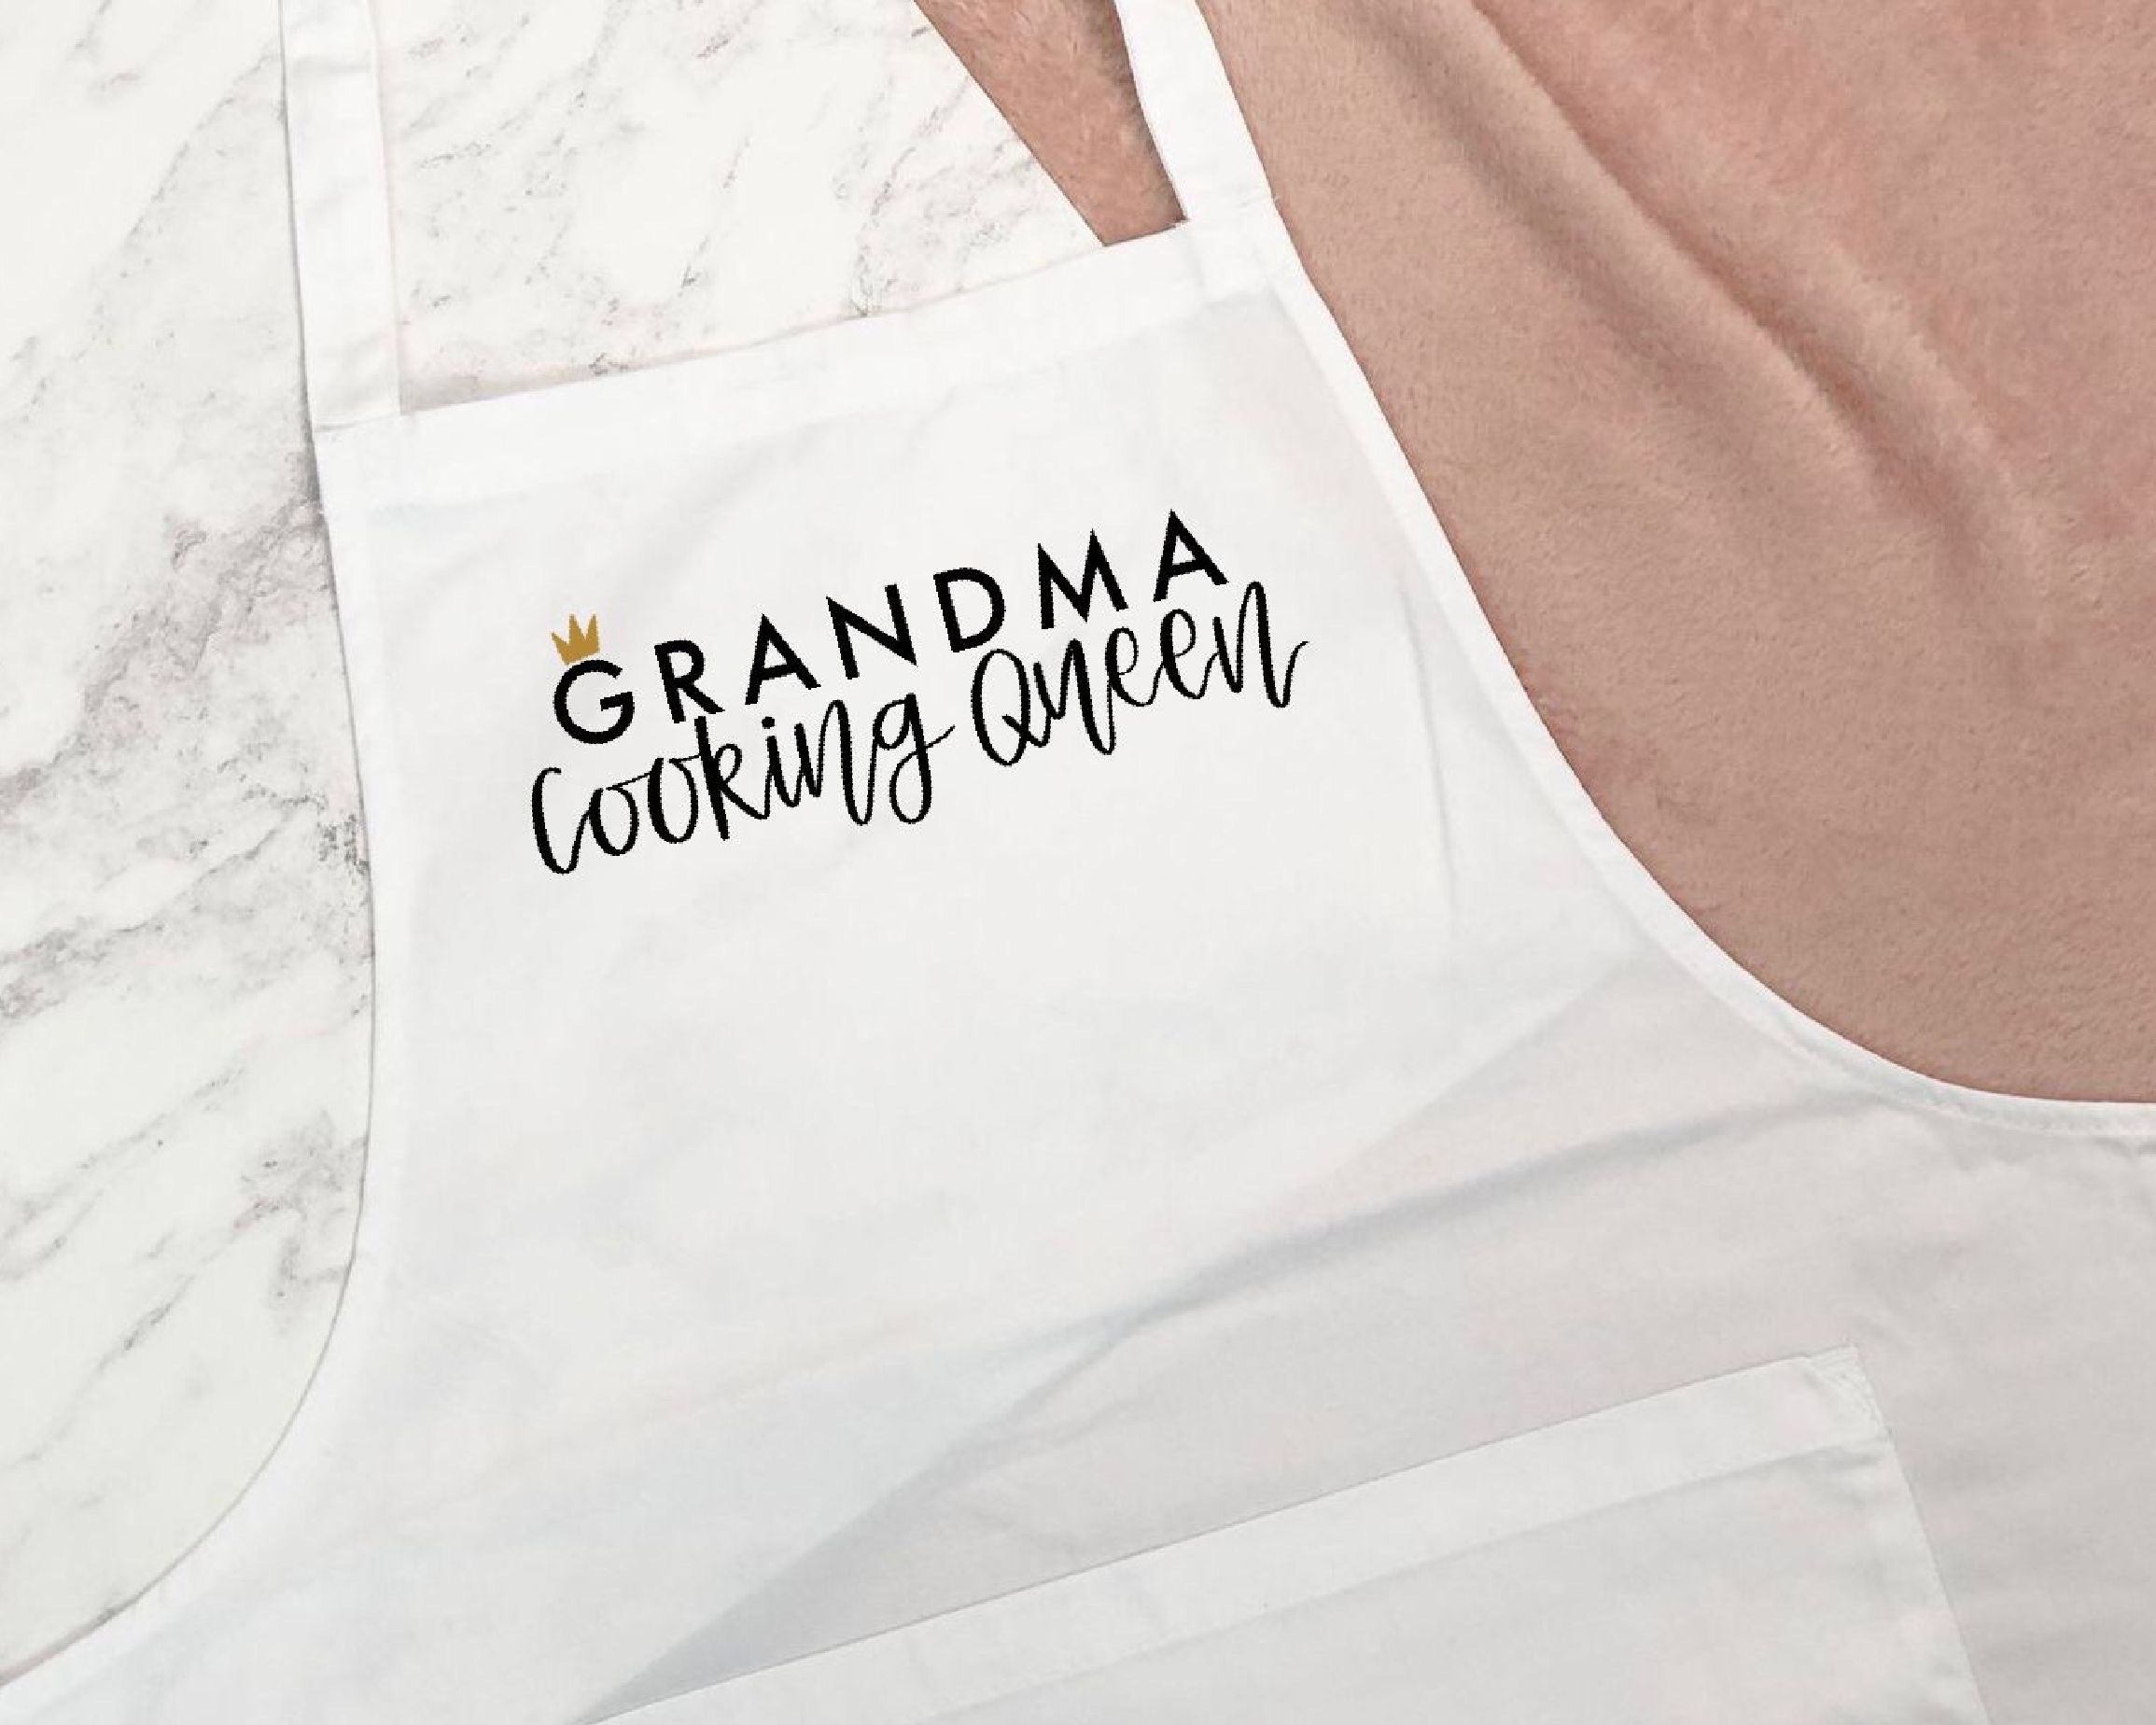 Cooking Queen Apron - You Make My Dreams